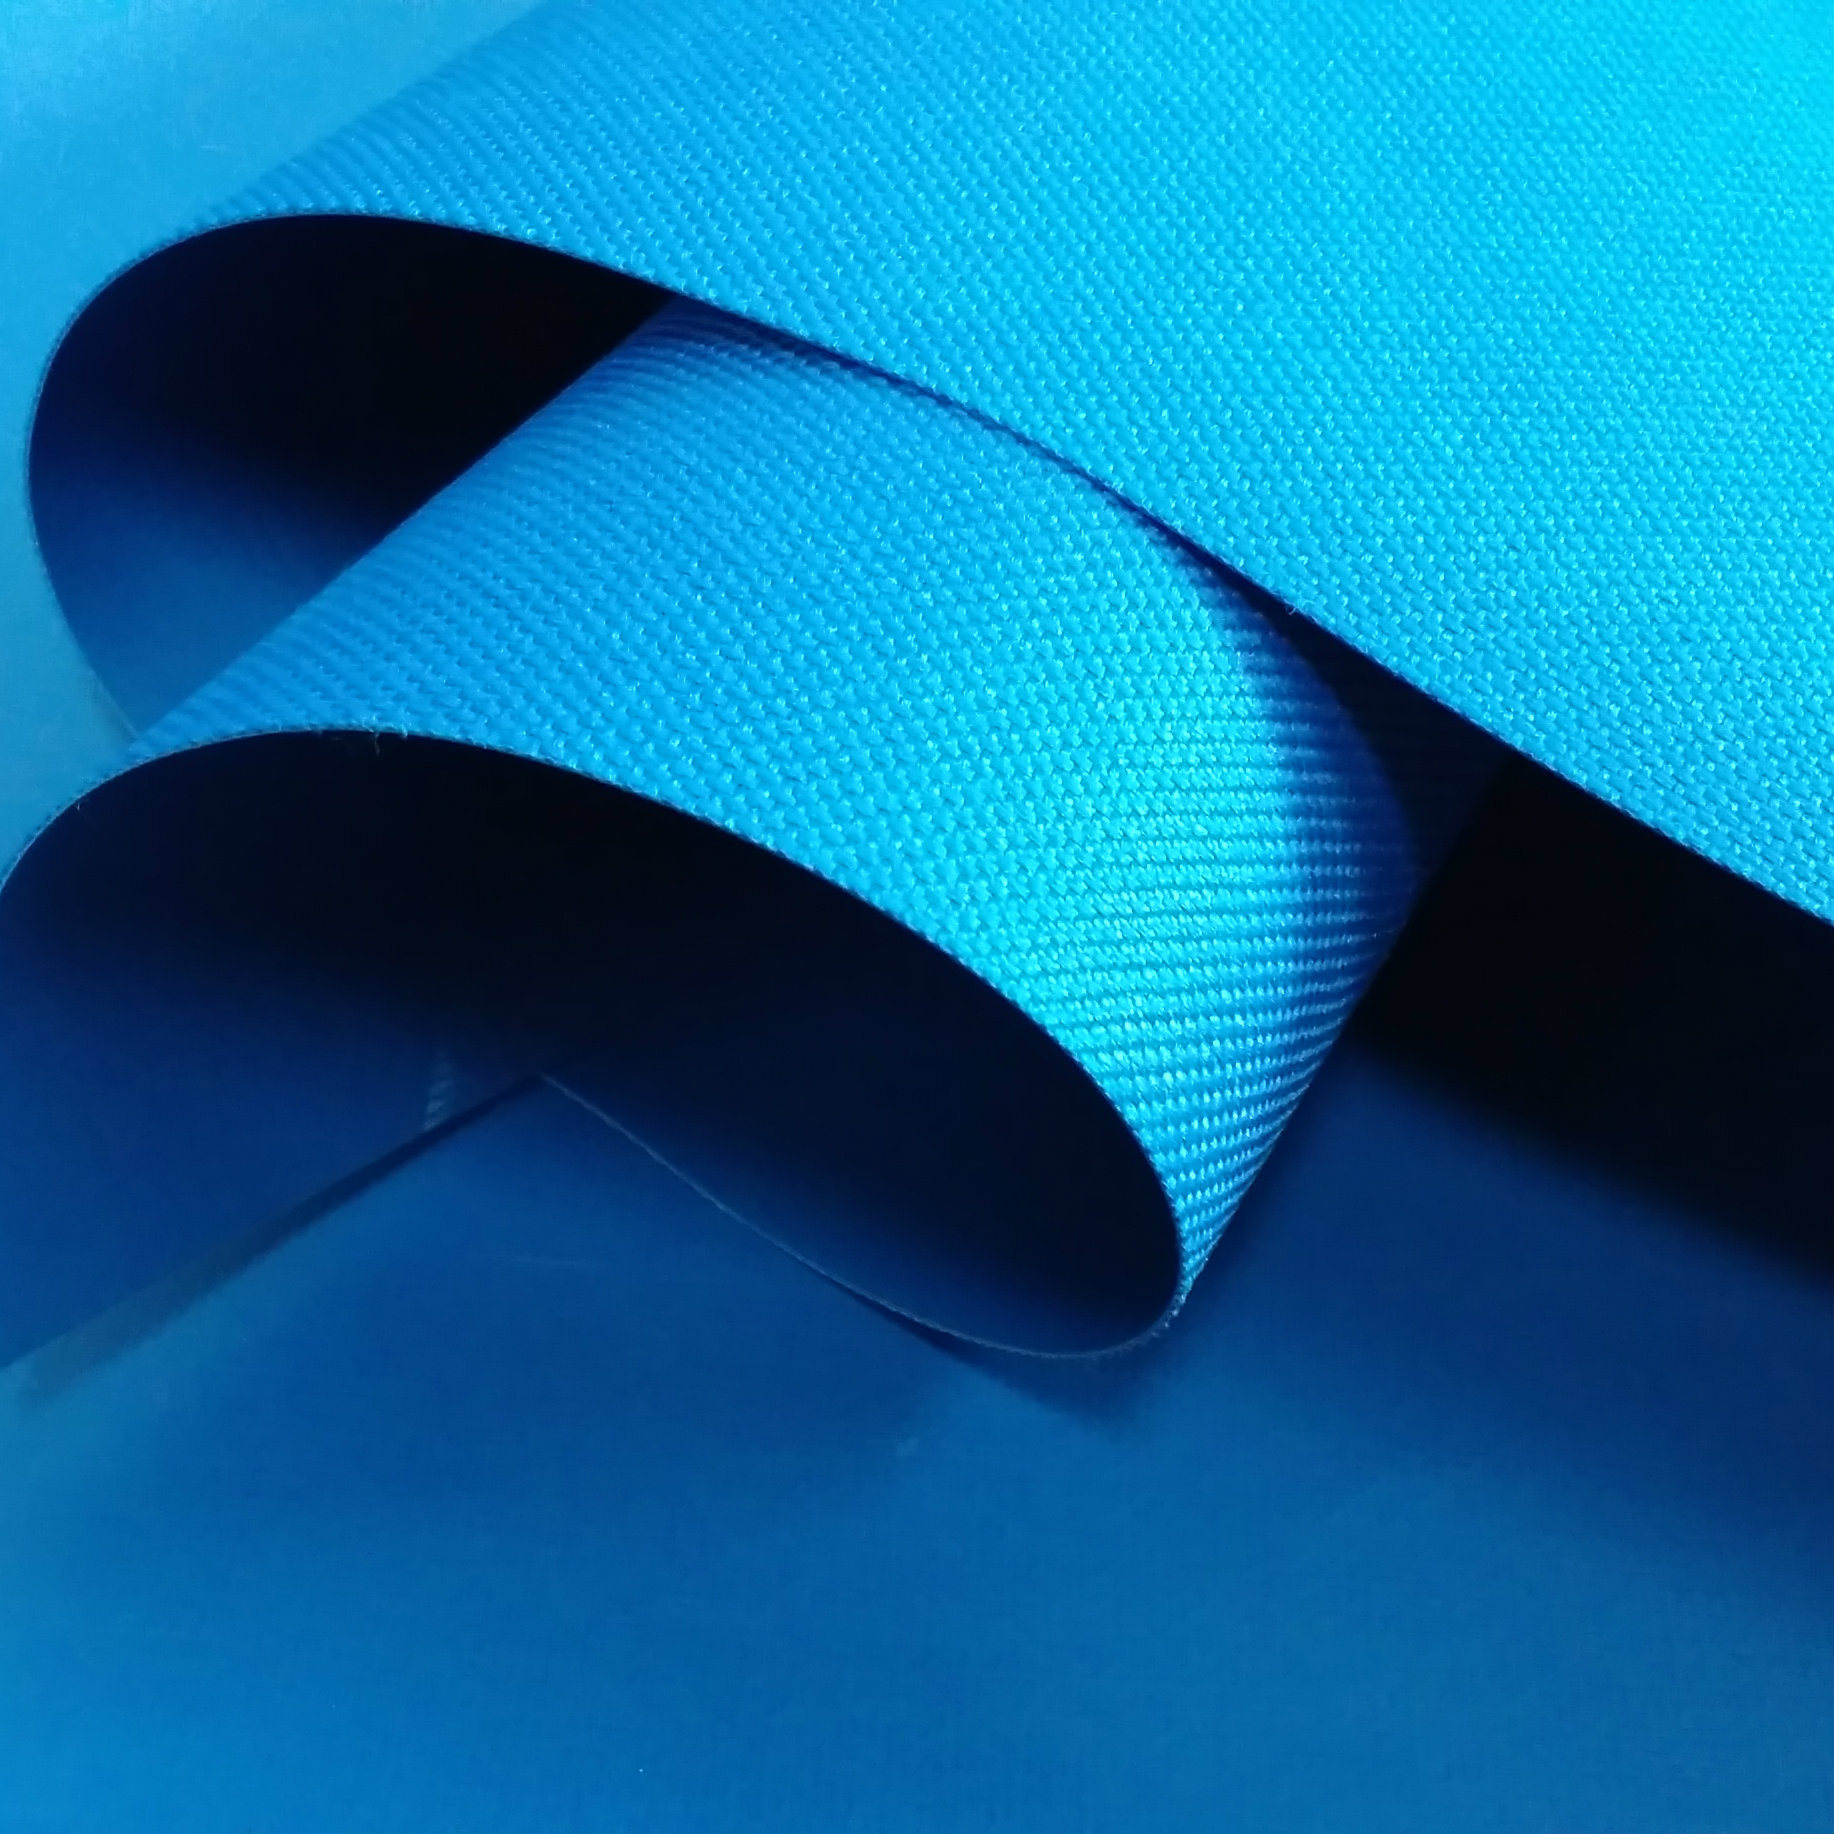 China Wholesale Stock 600d Polyester Oxford Fabric with PVC Backing for Bags and Tents